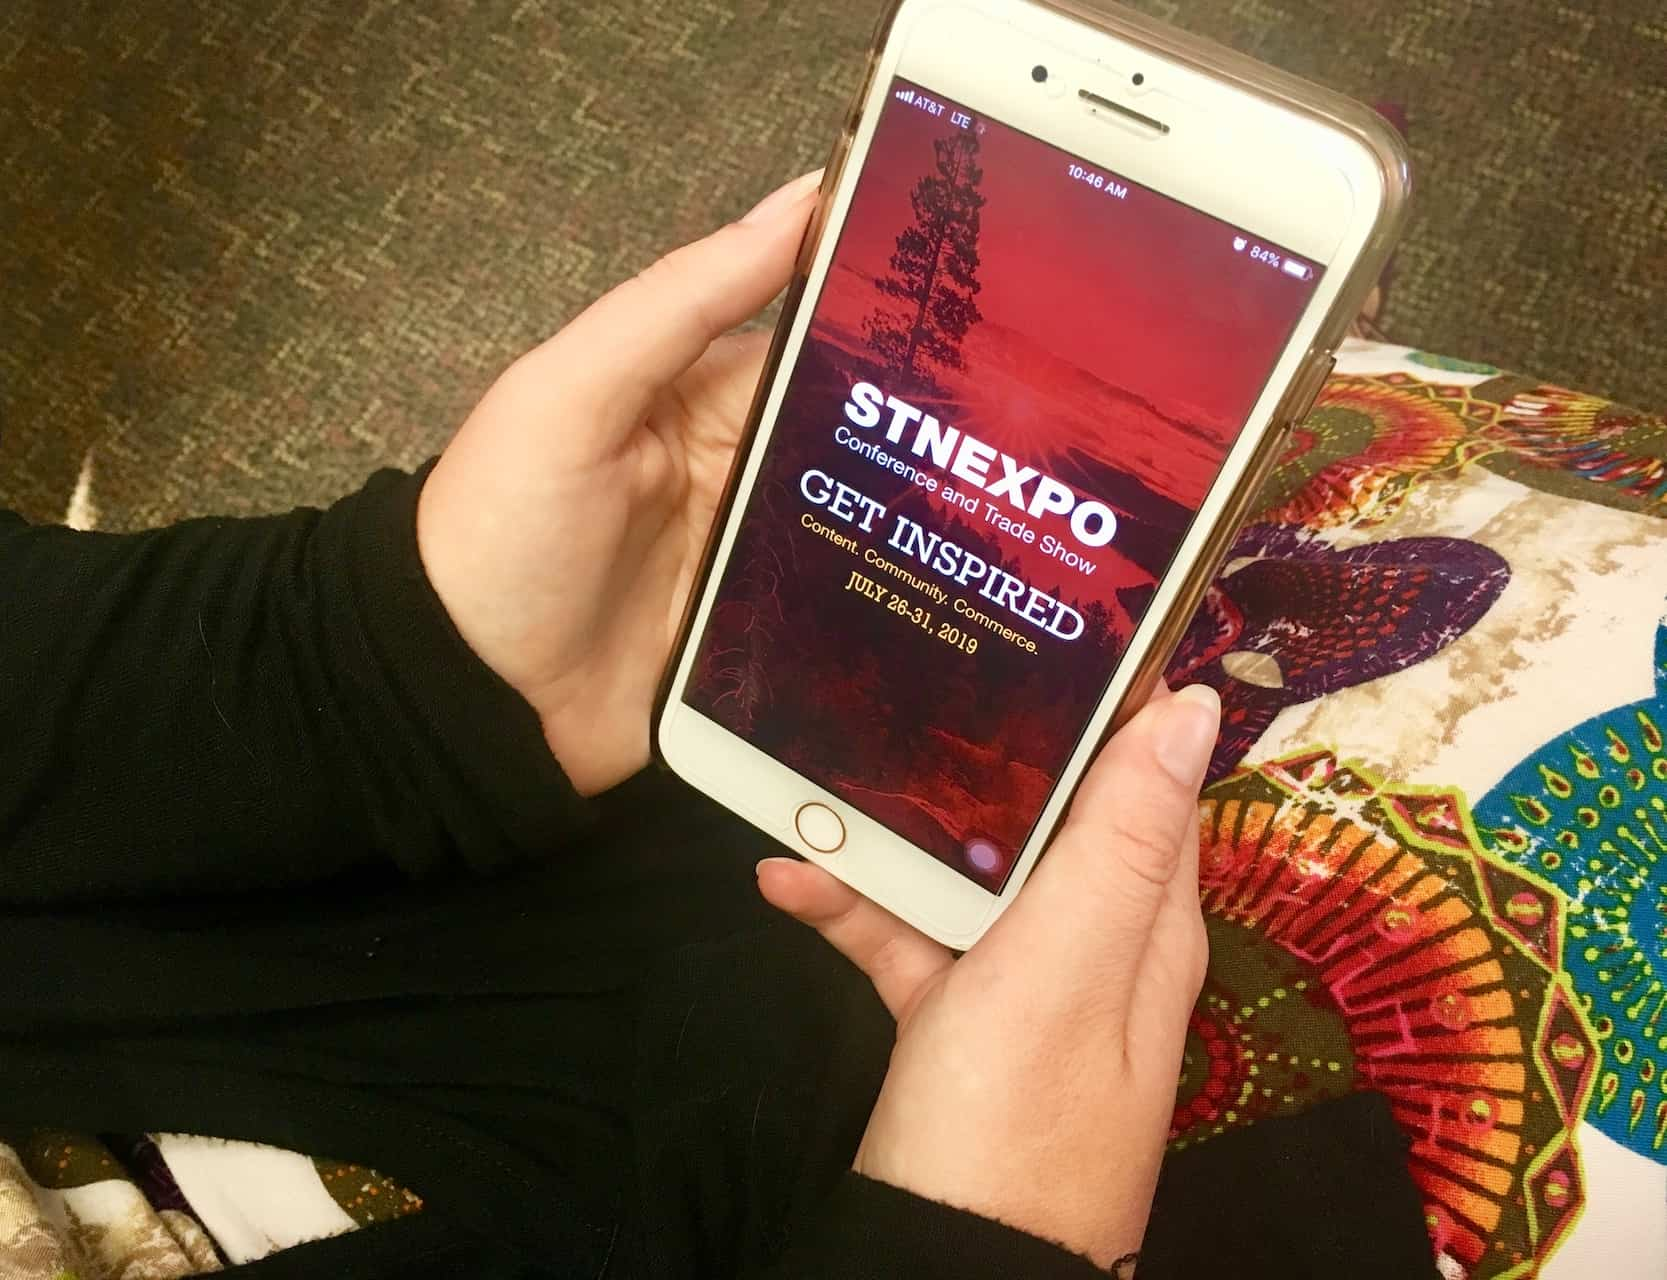 Download the STN EXPO Reno App and Play to Win Up To $1,000! - STN Media